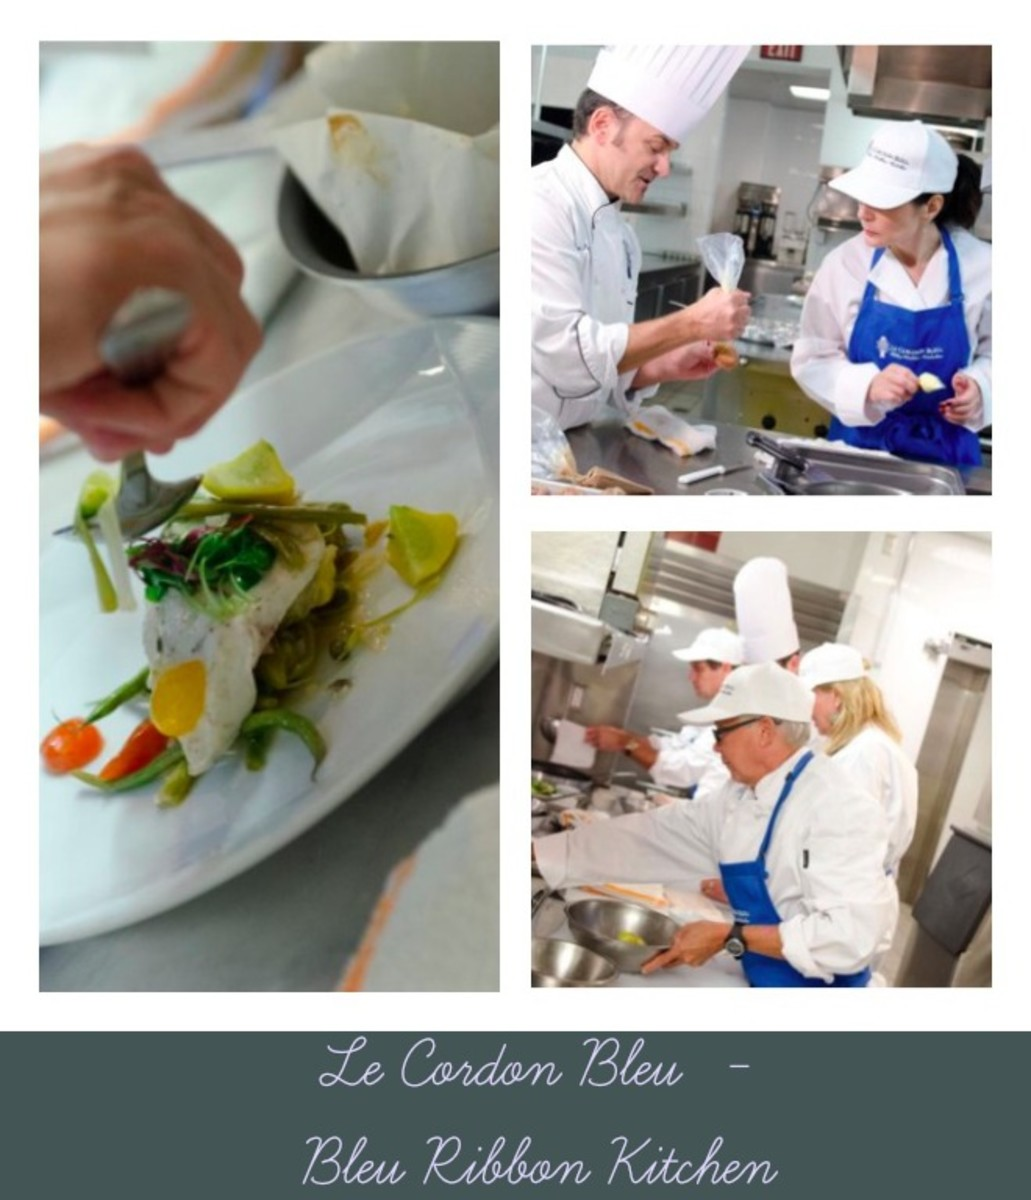 Le Cordon Bleu Event